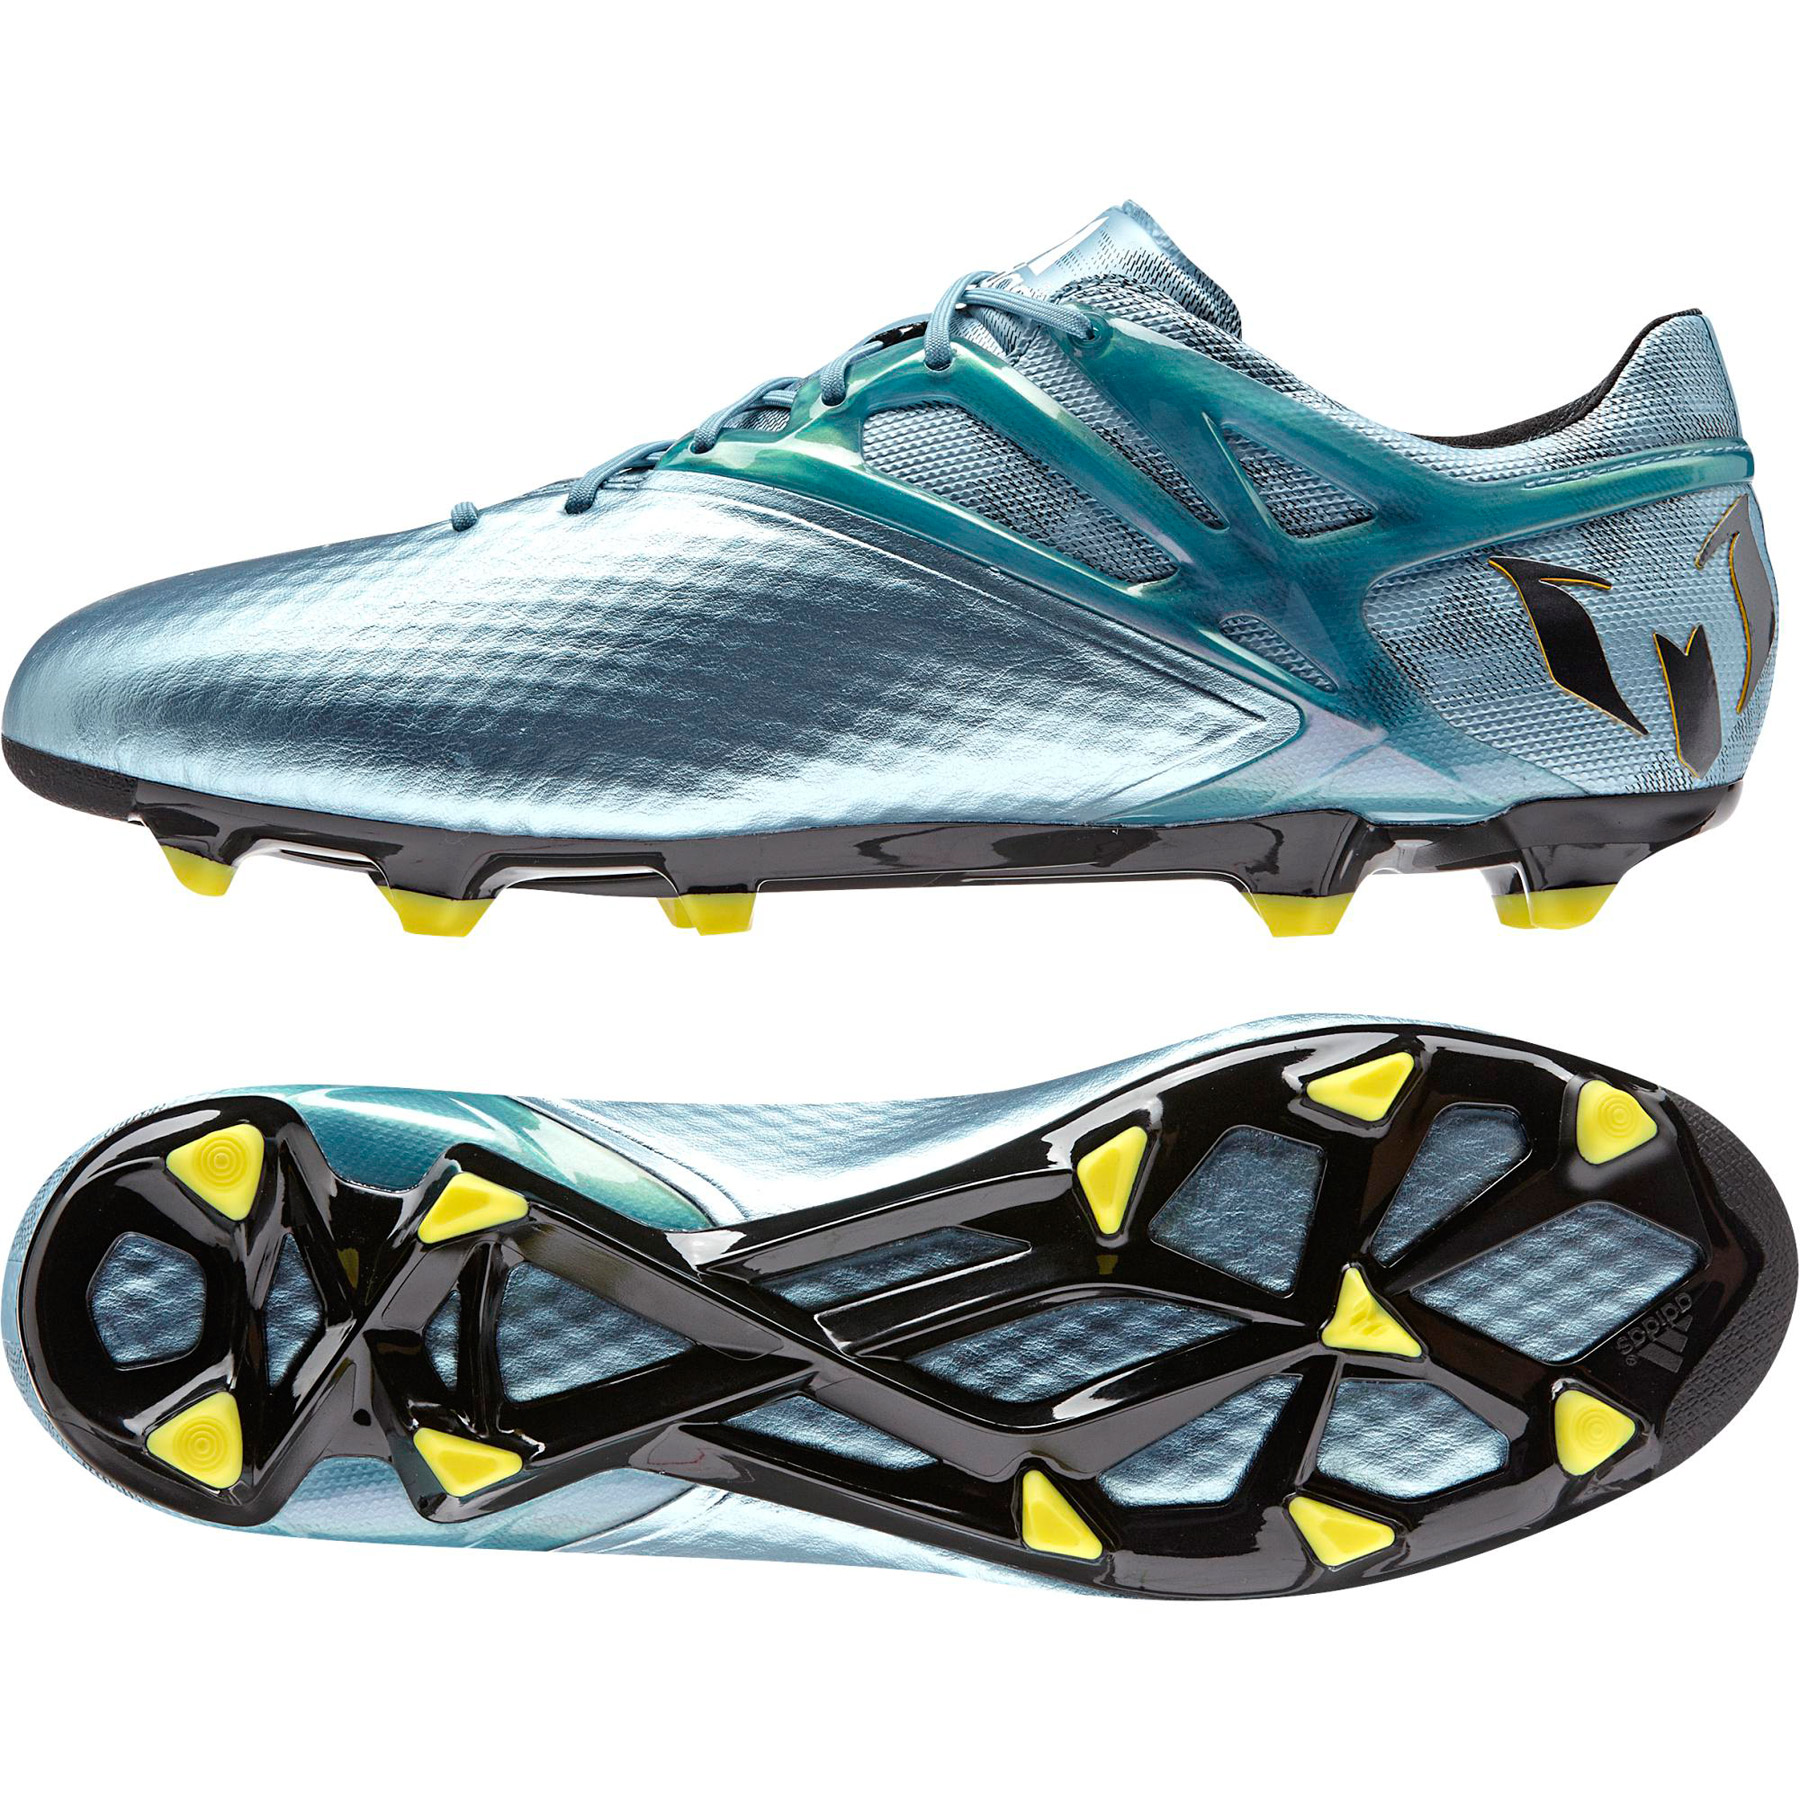 Messi 15.1 FG Lt Grey